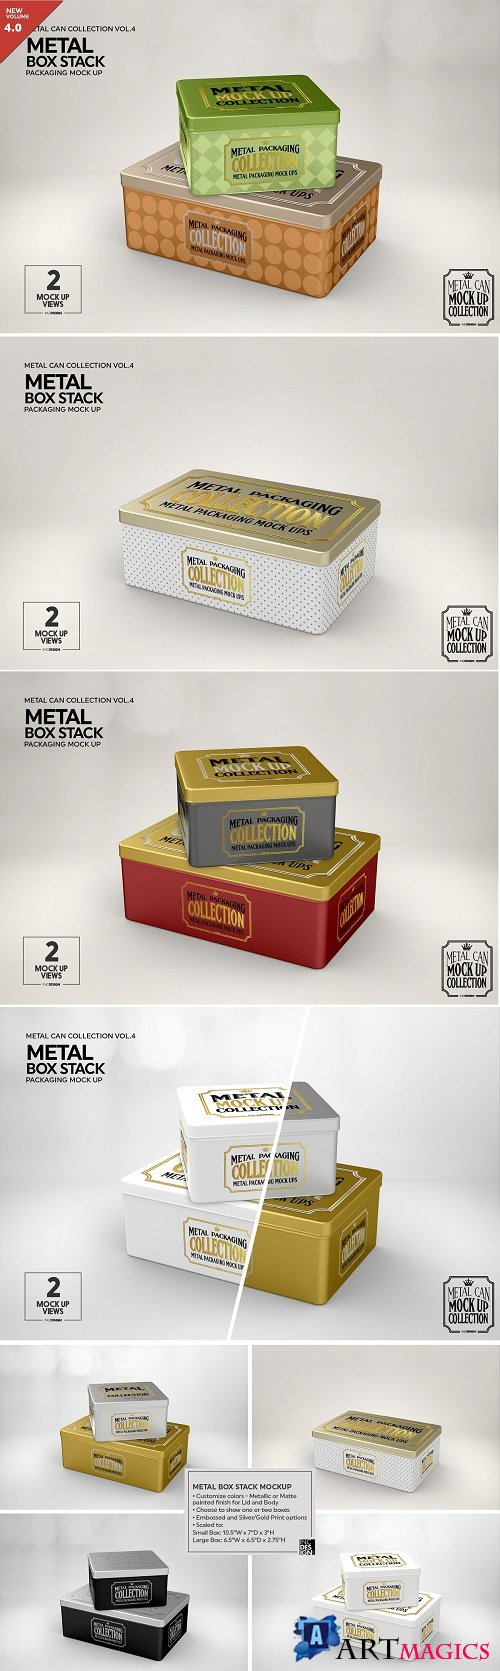 Metal Box Stack Packaging Mockup 3883387